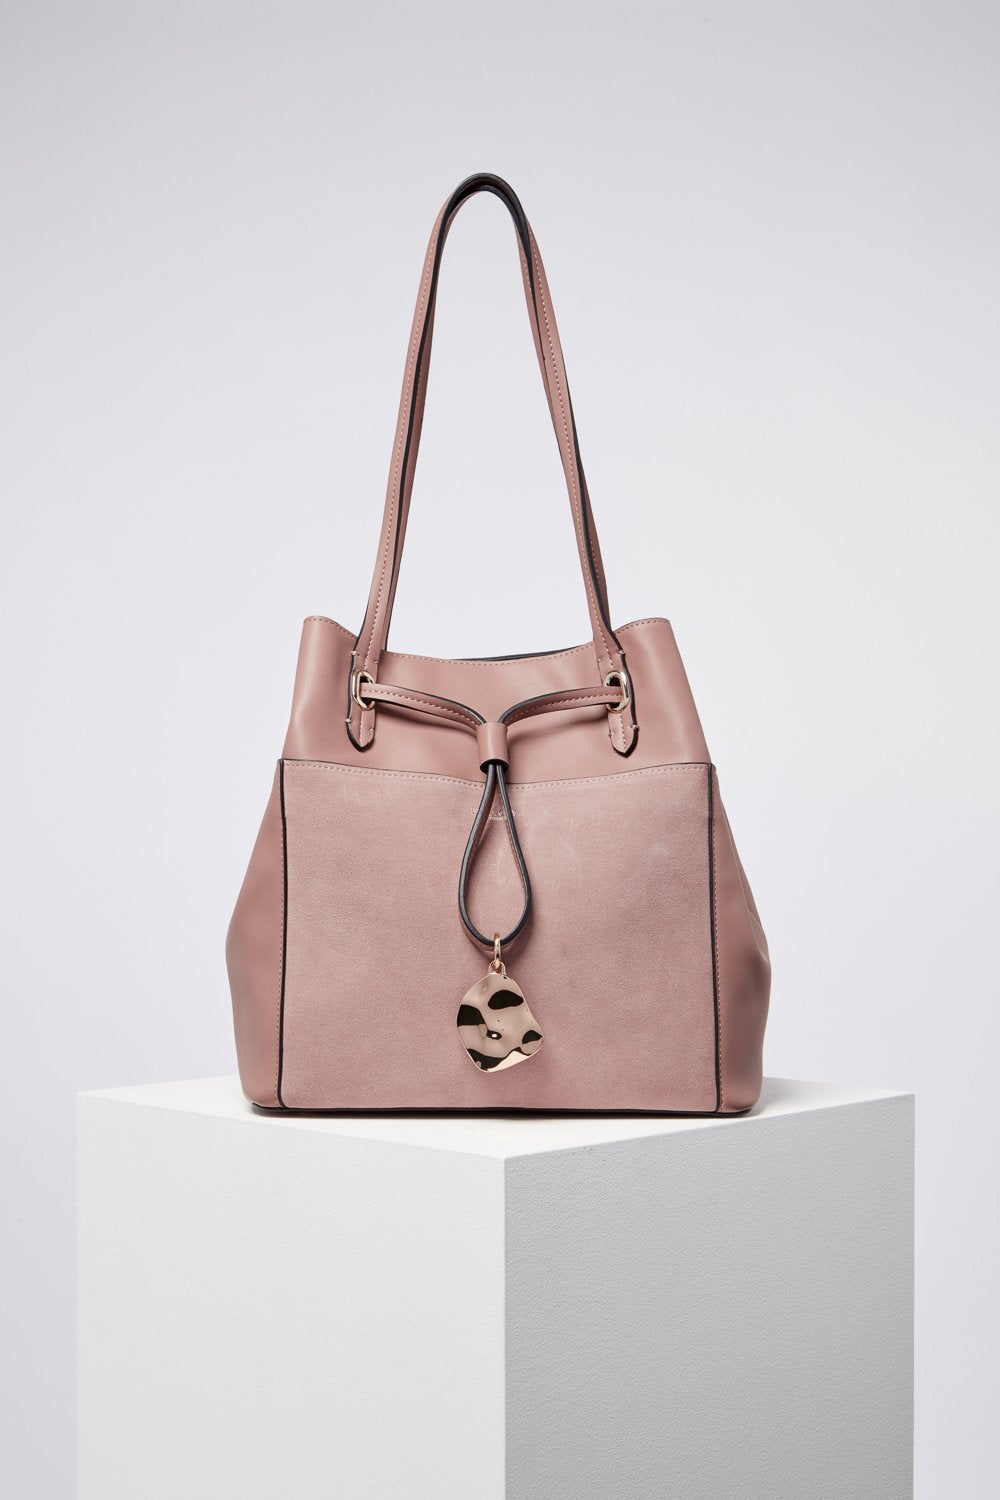 Ophelia Mink Large Drawstring Shopper